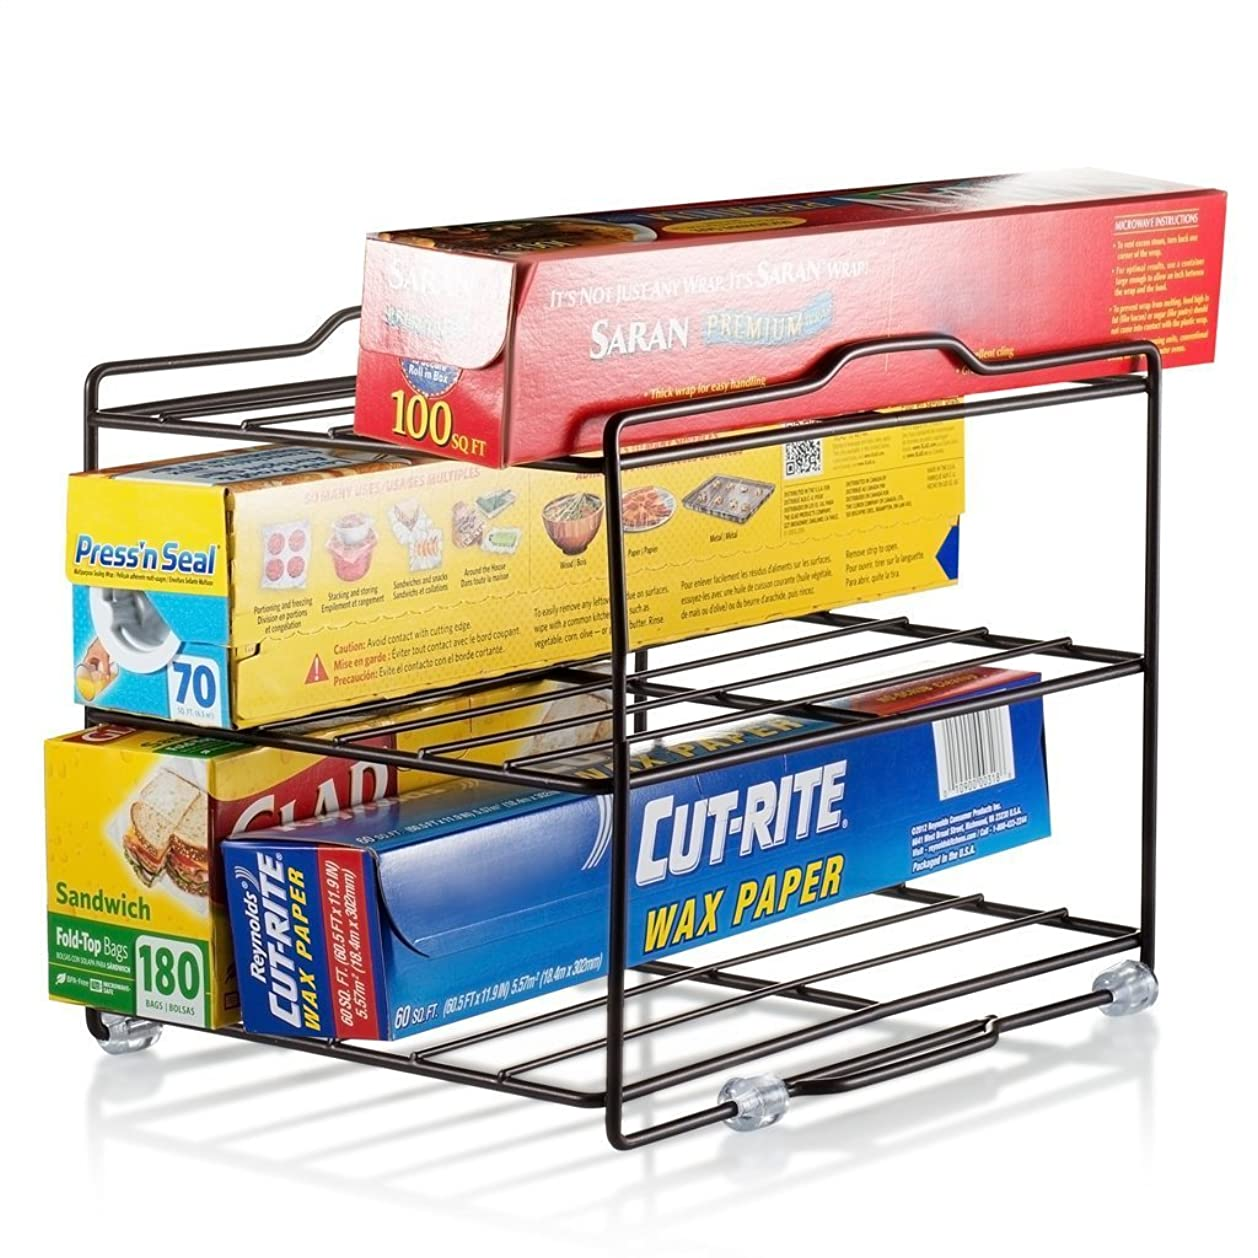 Sagler Kitchen Rack-Cabinet Wrap and Foil-Pantry Organization for Parchment Paper and Plastic Food Bags, Bronze xrcyy2015